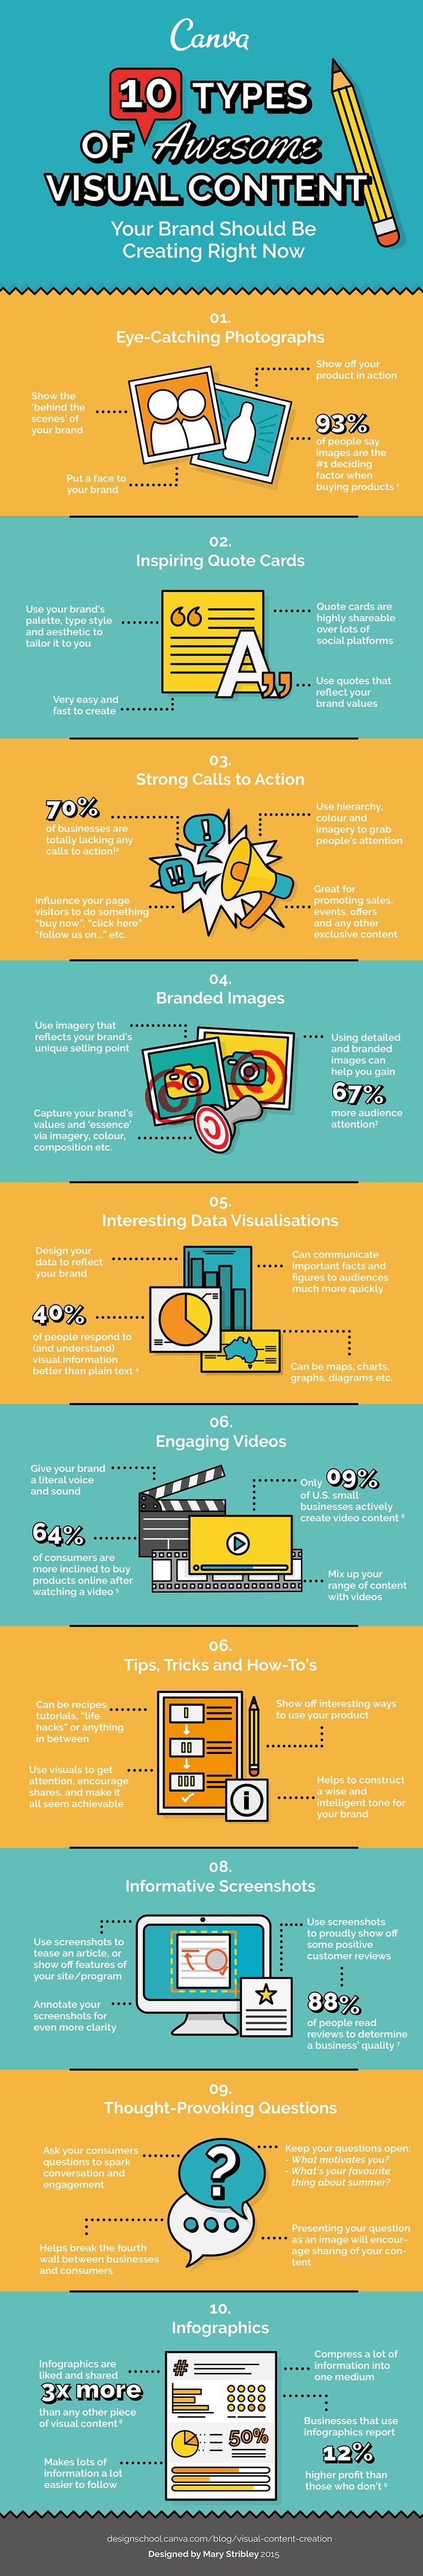 The 10 types of visual content each business should create for social media, and their respective results. #infographic #tips